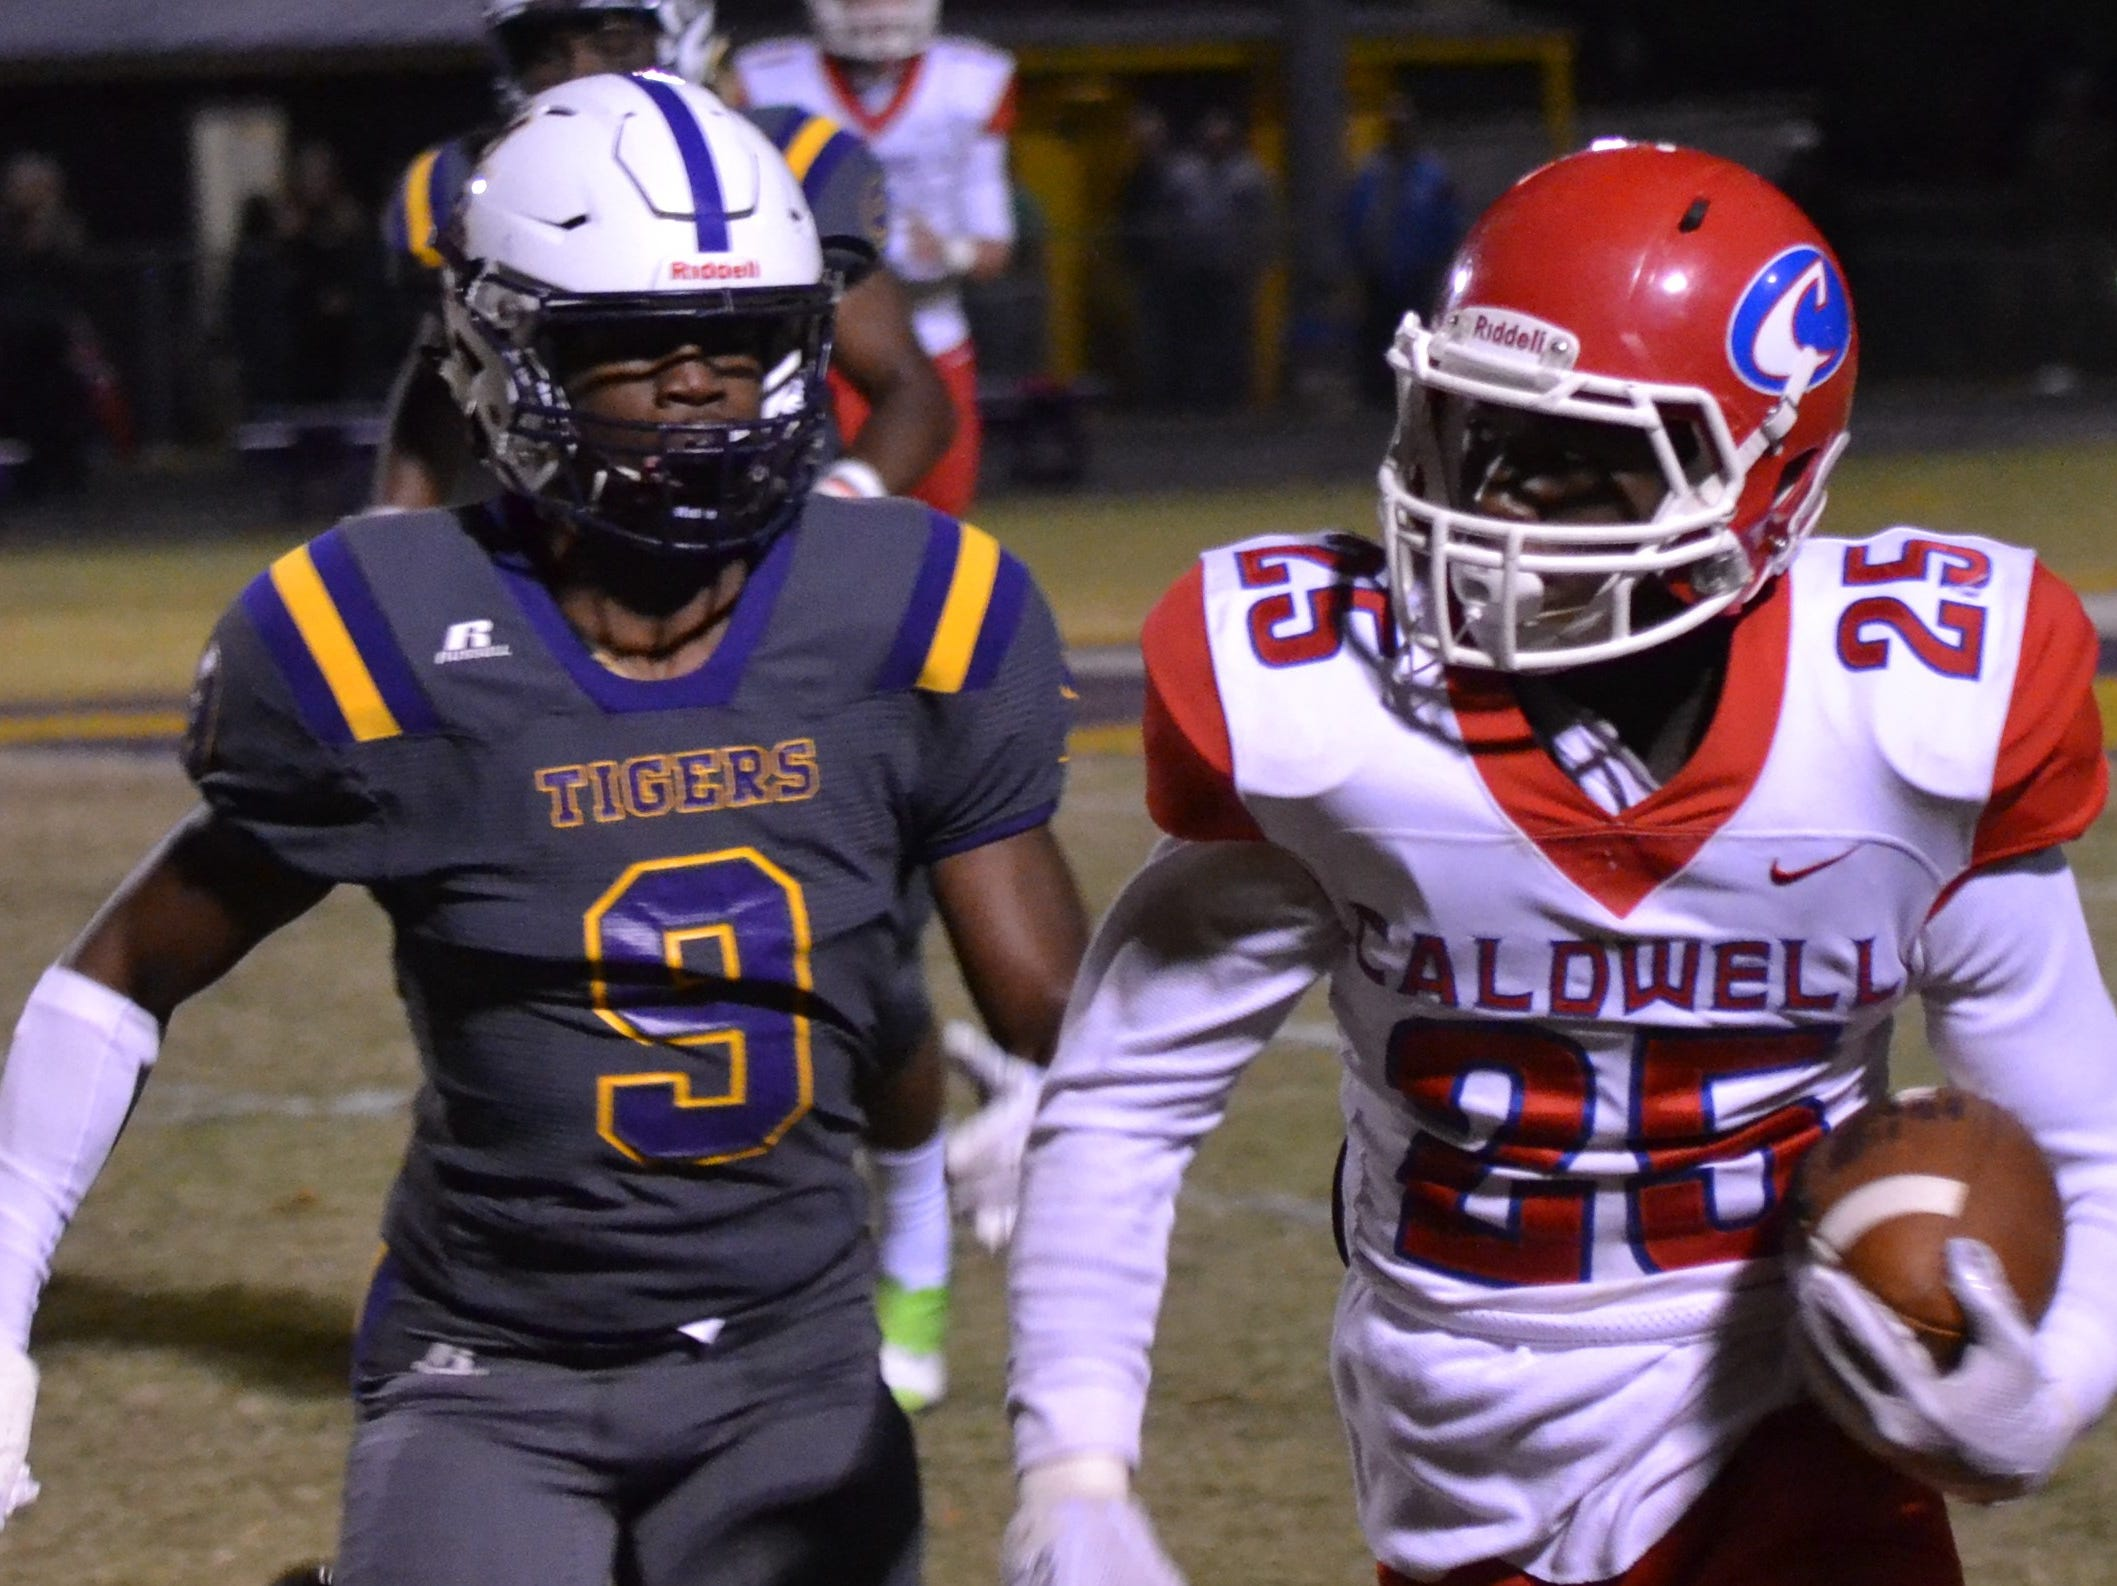 Tiger defender Clifford Champ (9) closes in on Caldwell receiver K.D. Robinson (25). Marksville and Caldwell met in the regular season finale Friday night with Caldwell edging Marksville 13-8.